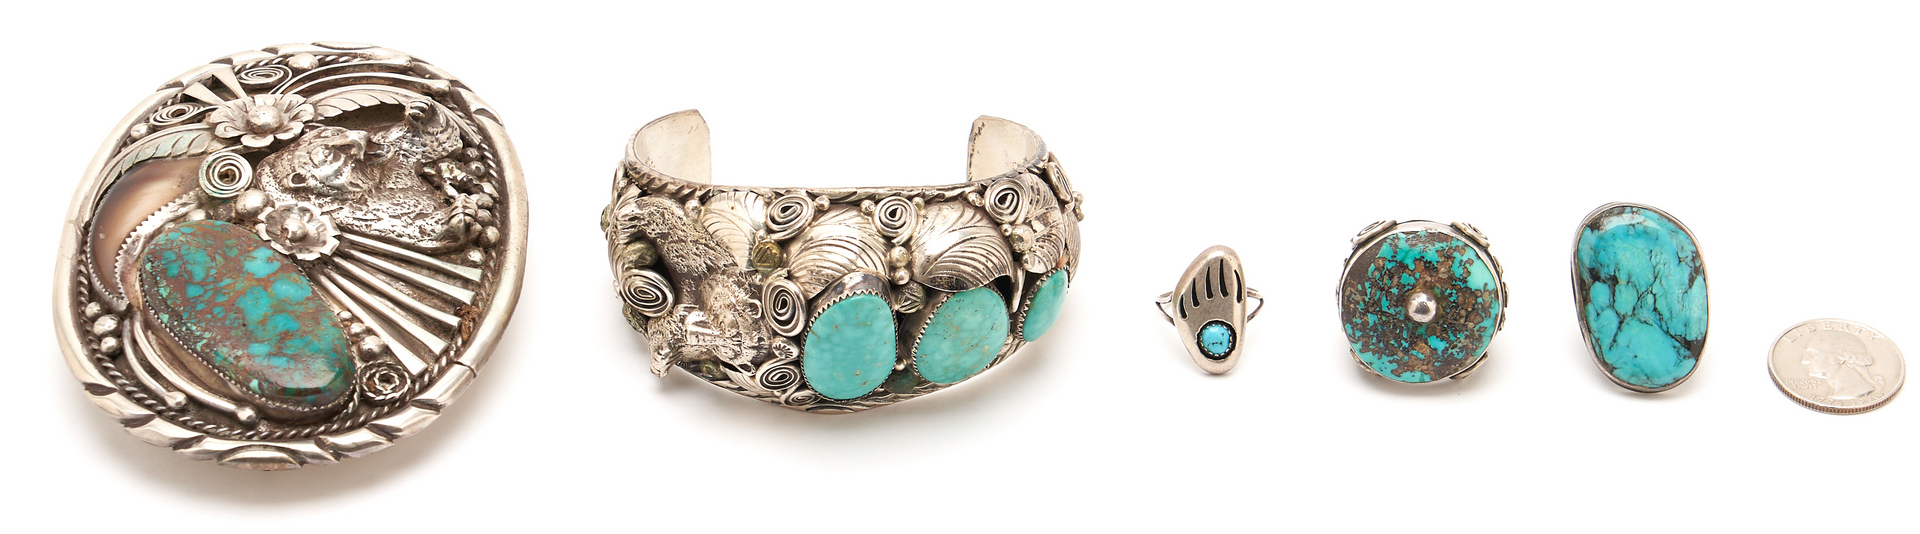 Lot 1091: 5 Pcs. Native American Turquoise & Silver Jewelry